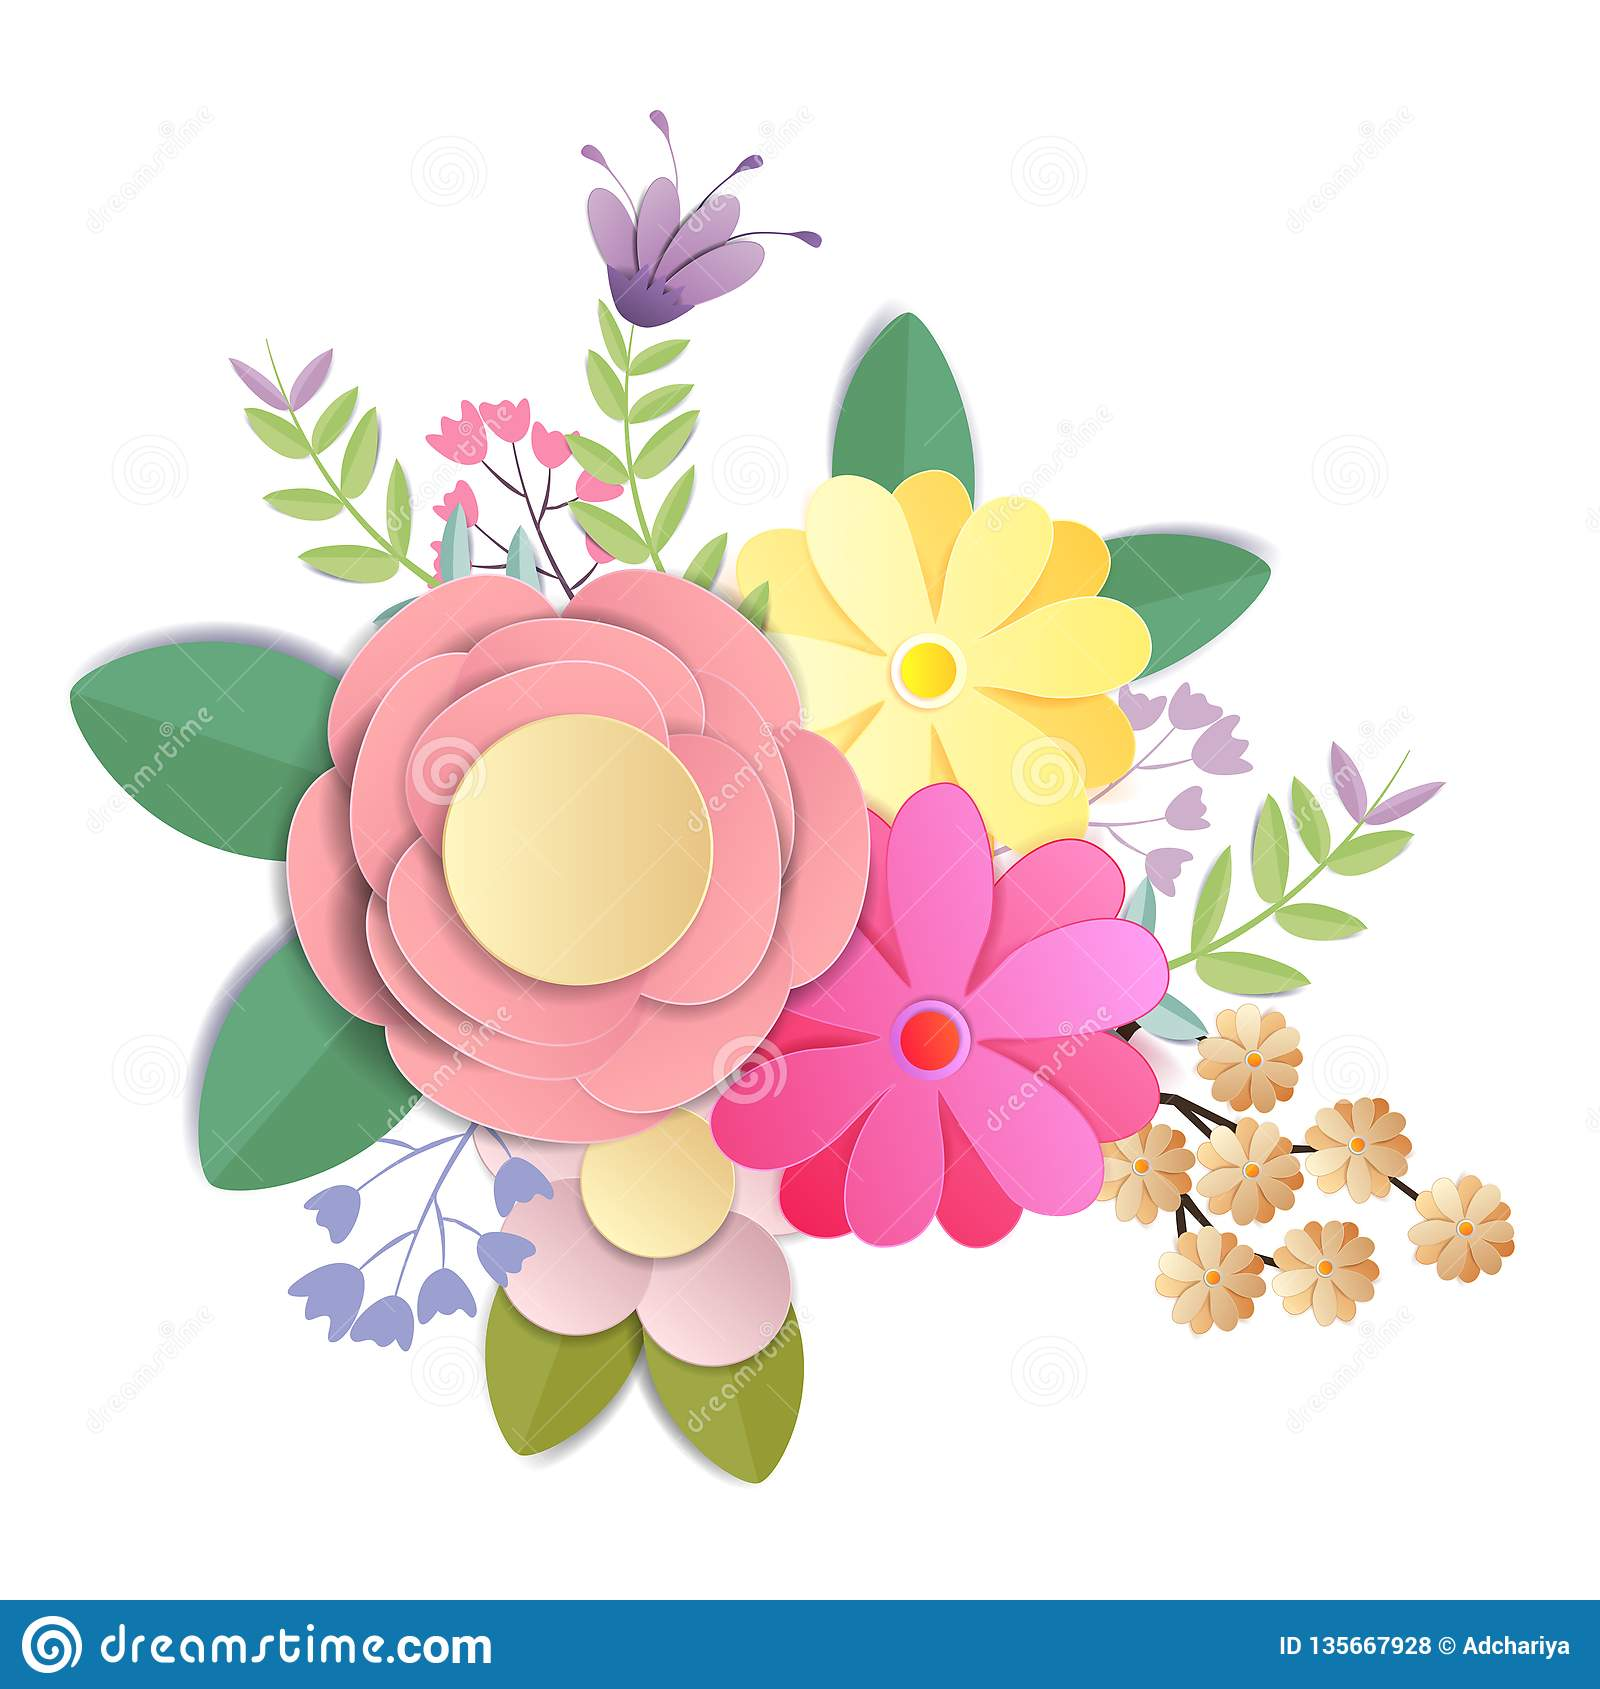 Vector And Illustration Design Craft Paper Flowers Spring Autumn Wedding And Valentine Festive Floral Bouquet Bright Fall Stock Vector Illustration Of Paper Isolated 135667928